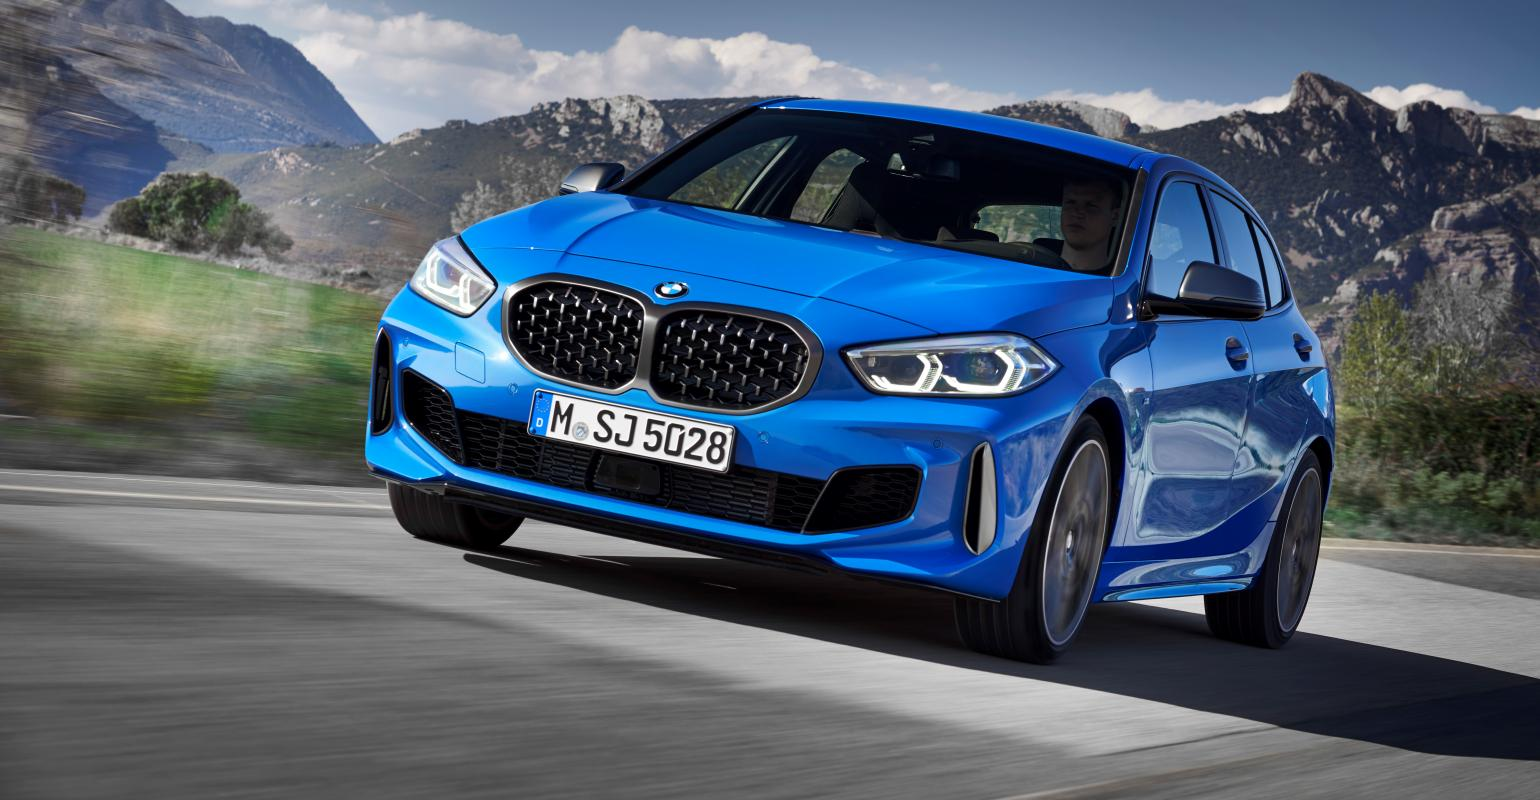 Third Generation Bmw 1 Series Arrives Not For U S Wardsauto